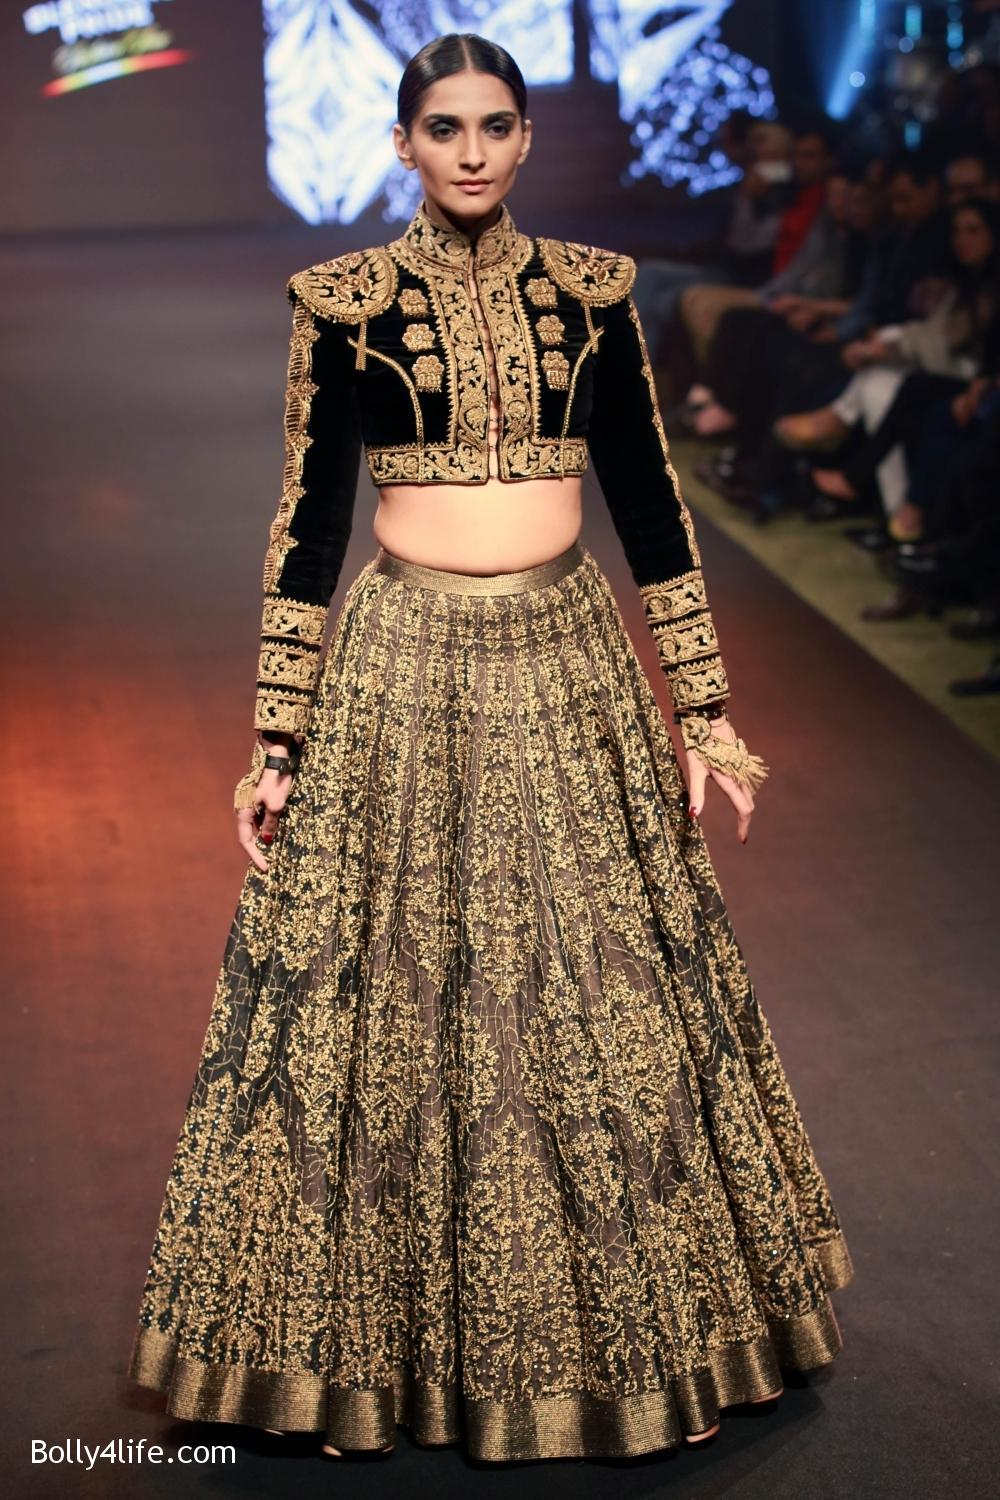 Sonam-Kapoor-walks-on-ramp-for-designers-Shantanu-and-Nikhils-show-during-the-Blenders-Pride-Fashion-Tour-2016-2.jpg